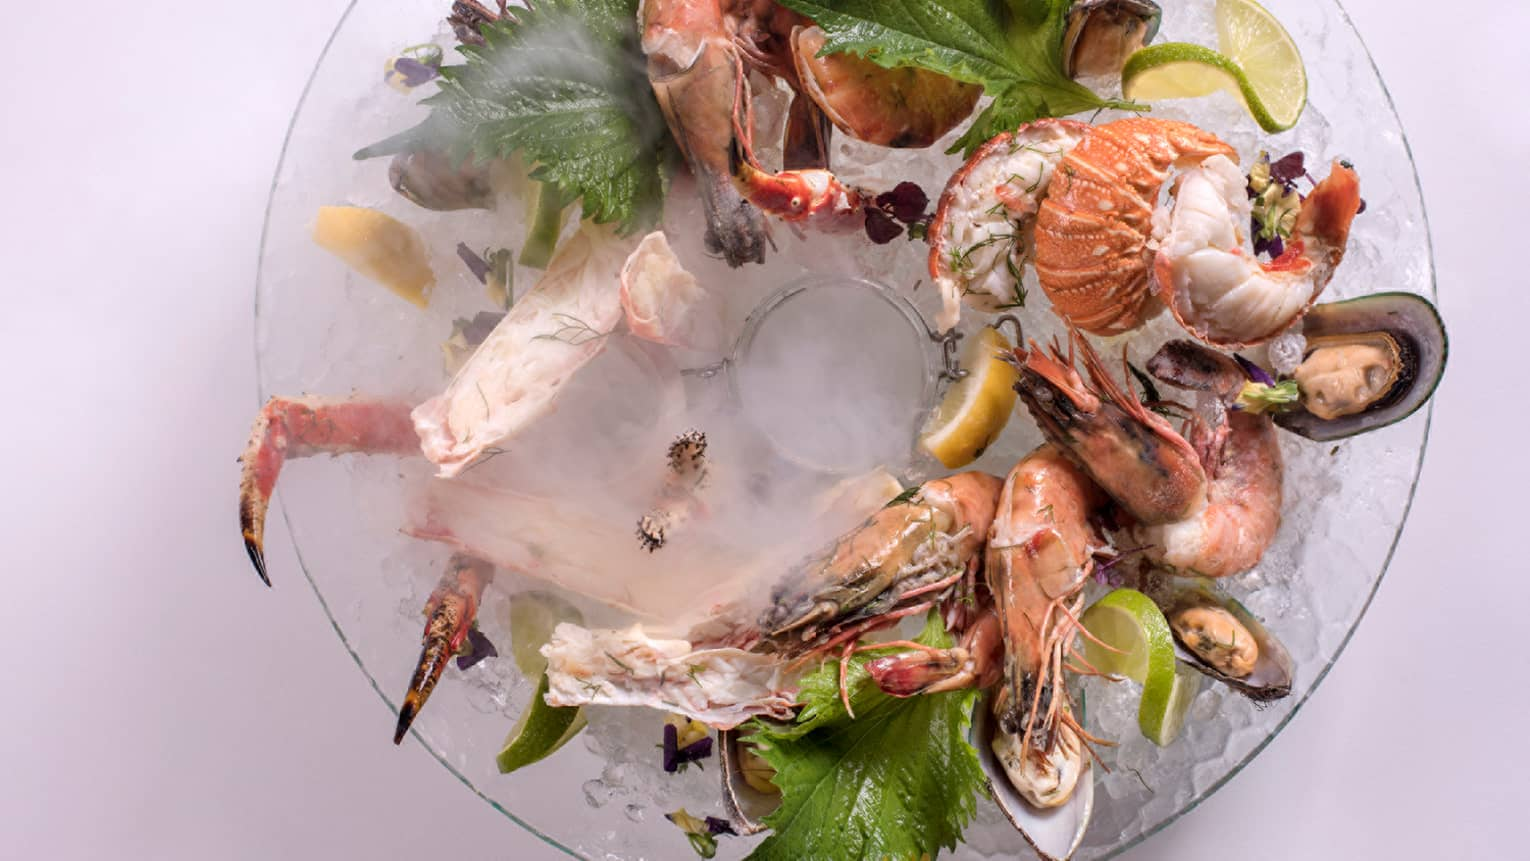 Grilled lobster tails, crab legs, oysters in ring on glass plate